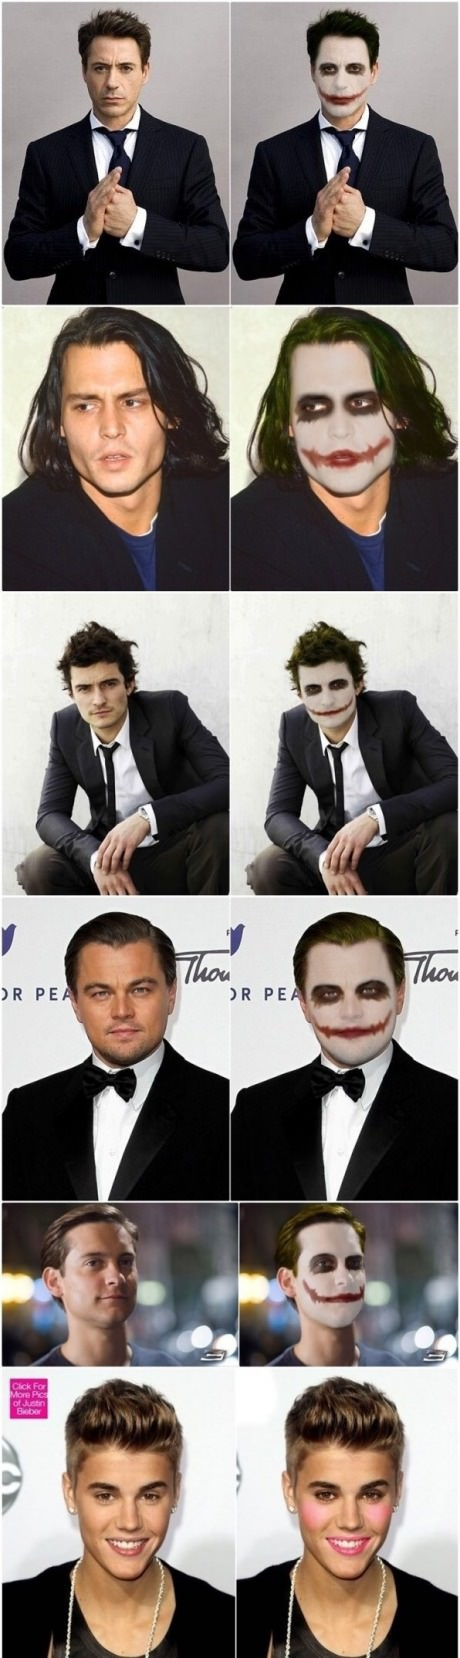 joker-celebs-actors